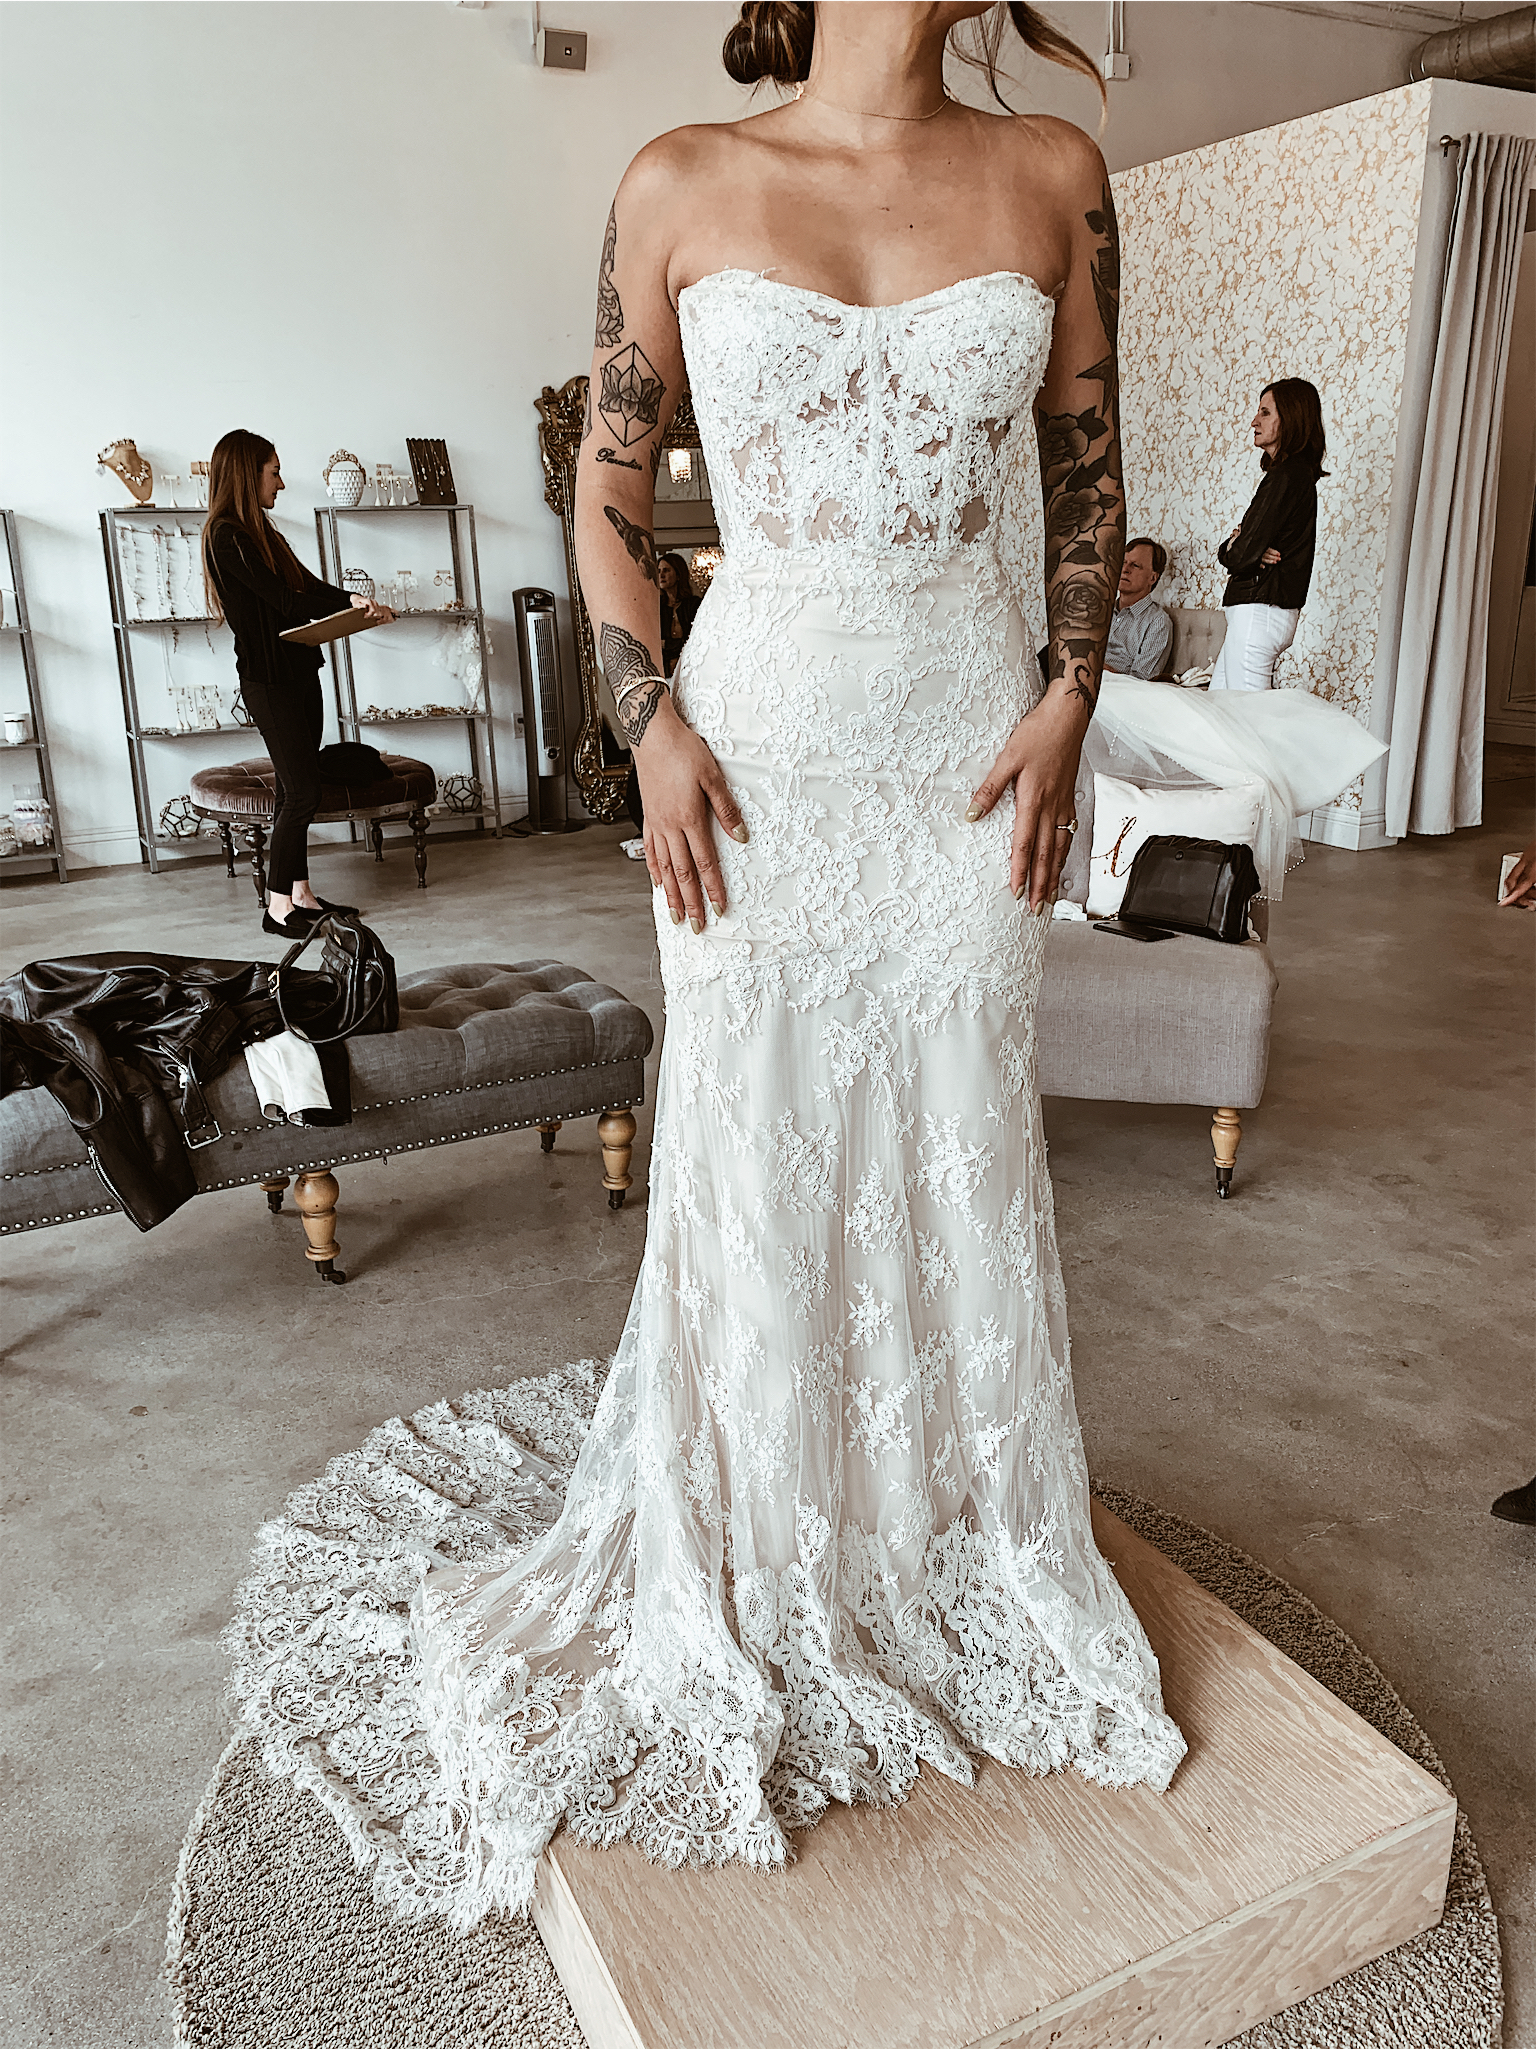 The classic romantic - This was such a beautiful dress. Simple, classic, chic and comfortable. I wasn't a huge fan of strapless as I felt like my small chest wouldn't look right but this fitted so well and complimented my frame. I love the see through corset detail and the beautiful lace train on this one!